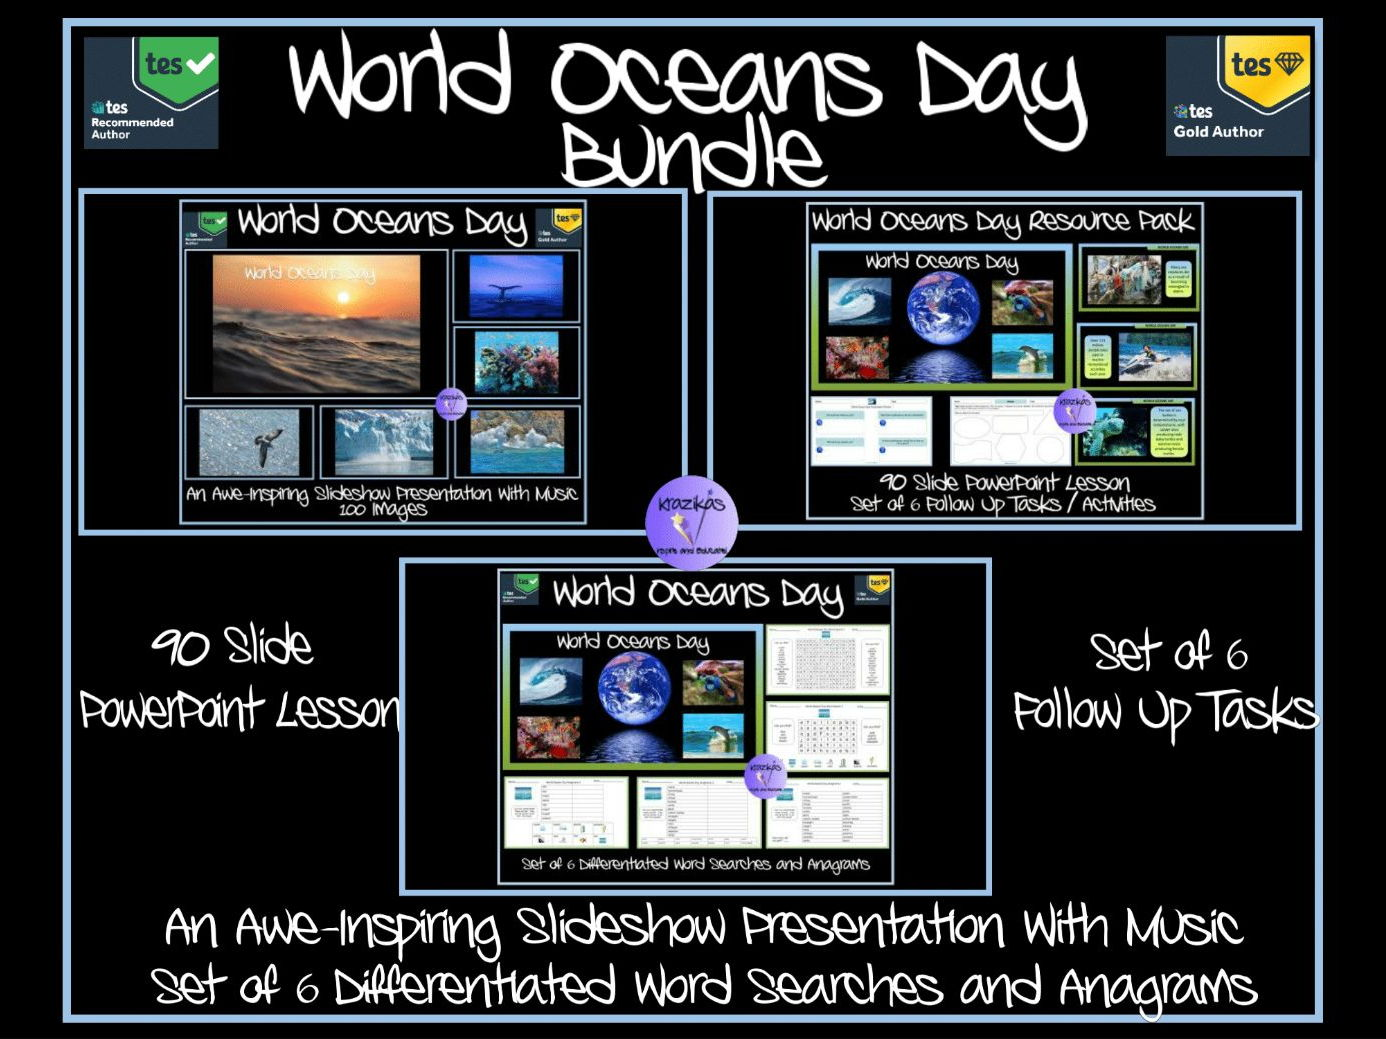 World Oceans Day Bundle - Two PowerPoint Presentations, Set of 6 Follow-Up Tasks / Activities, Set of 6 Differentiated Word searches and Anagrams